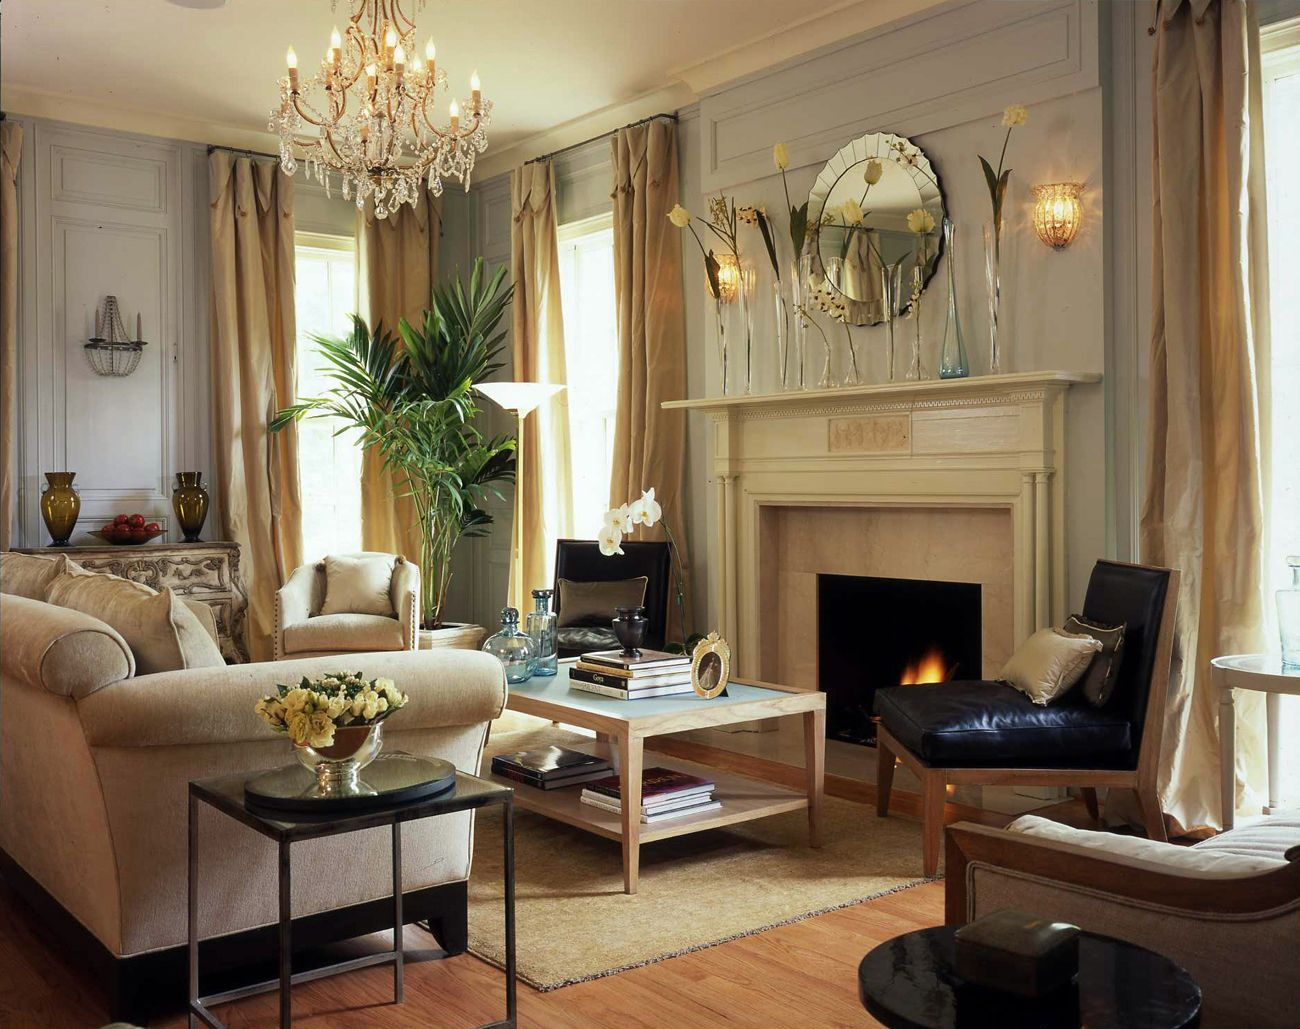 Modern interior new orleans home interiors formal for Modern new orleans homes